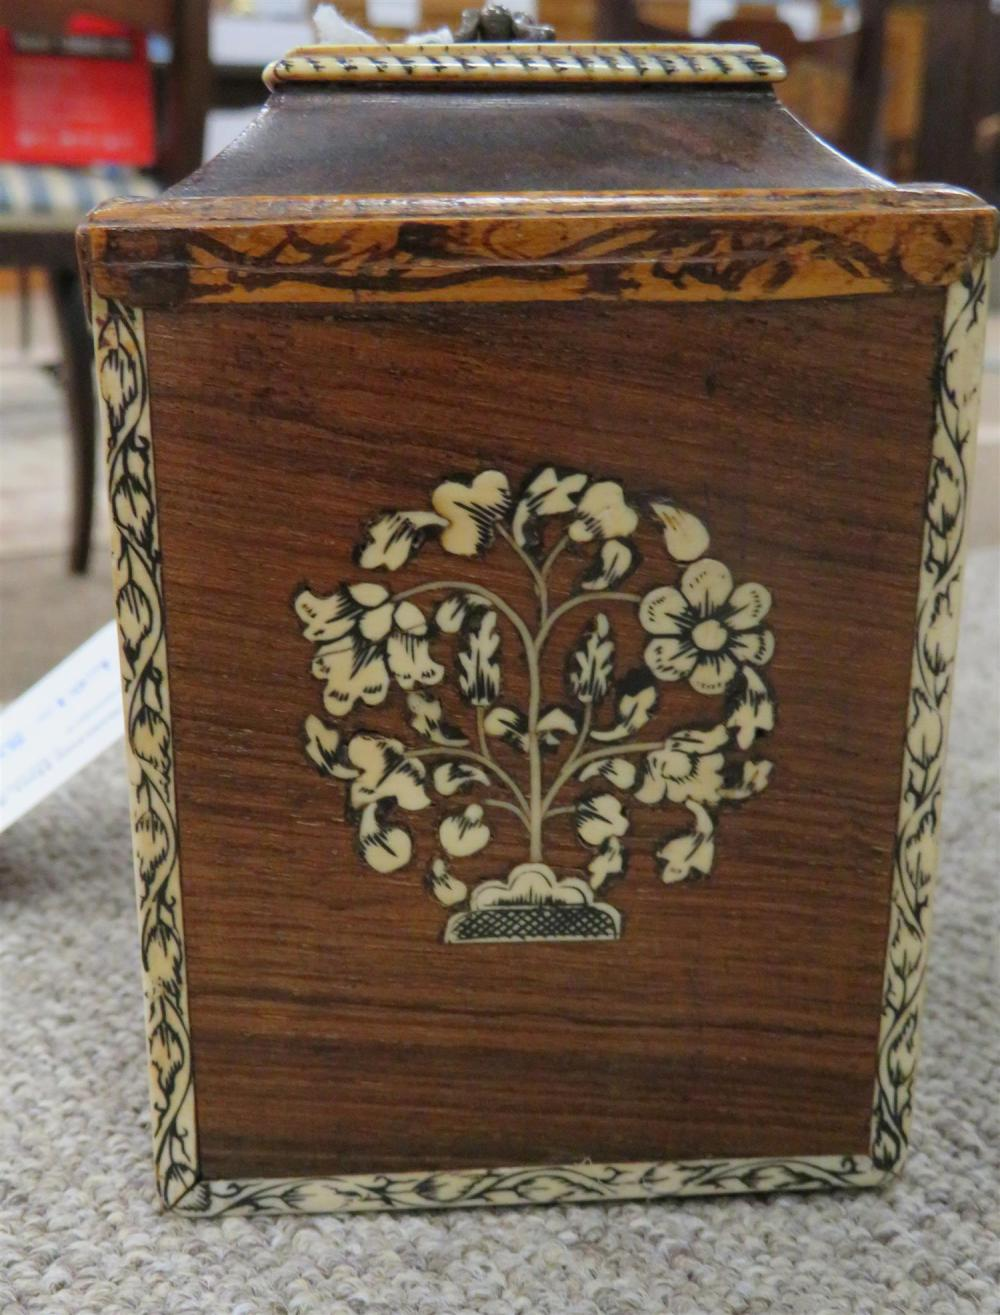 Vizagapatam Anglo-Indian ivory-inlaid rosewood tea canister